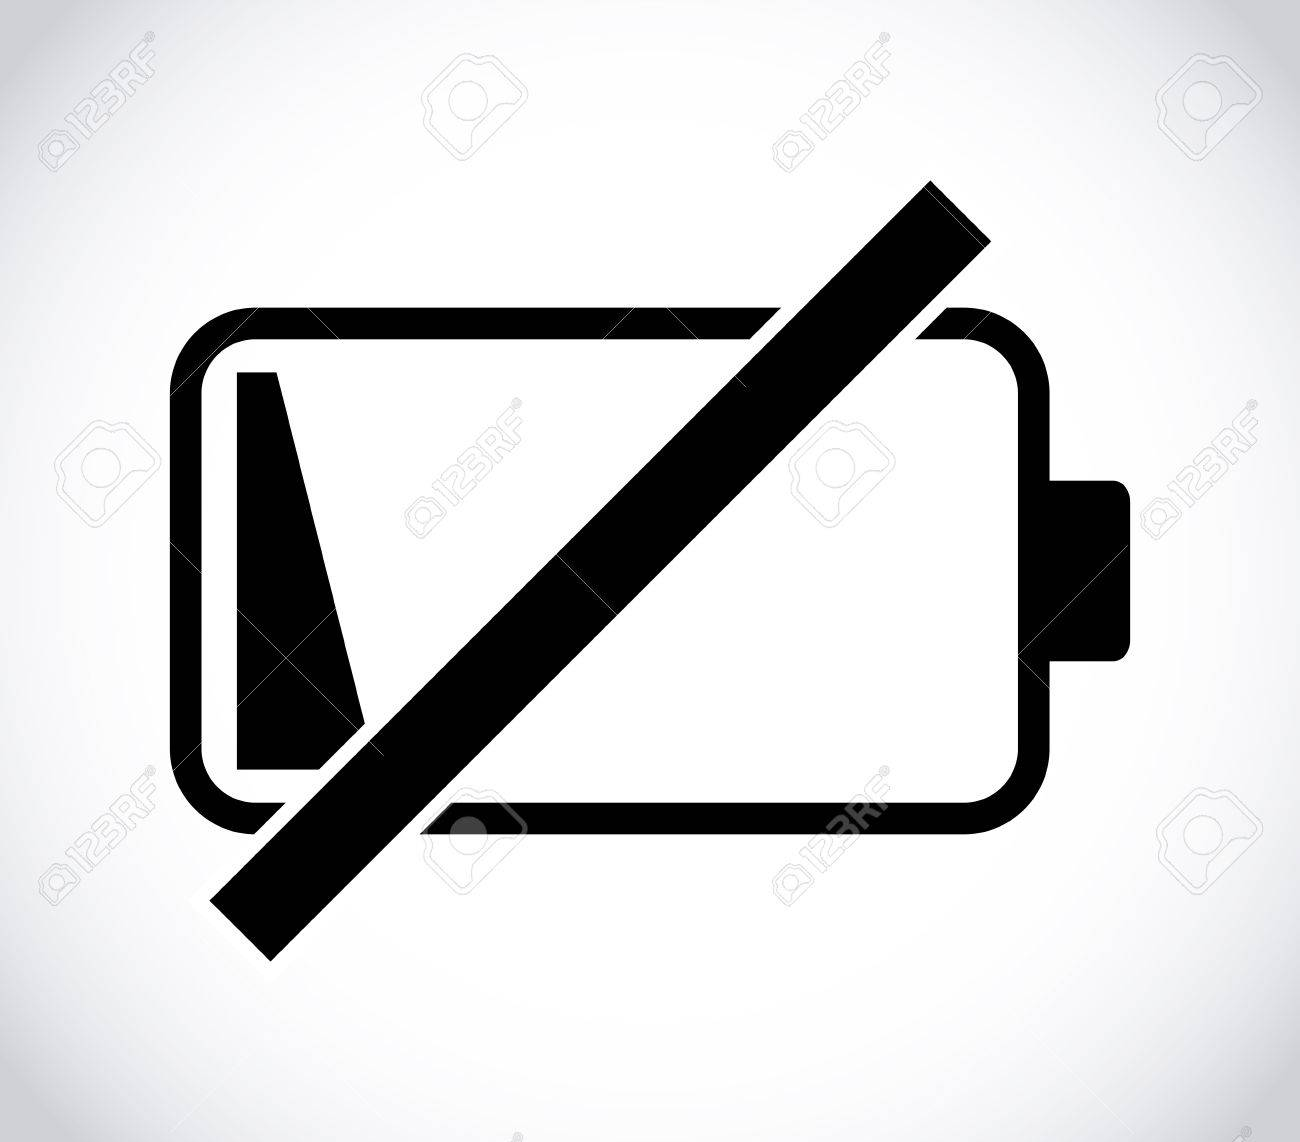 Empty Battery Icon Design Royalty Free Cliparts, Vectors, And Stock ...